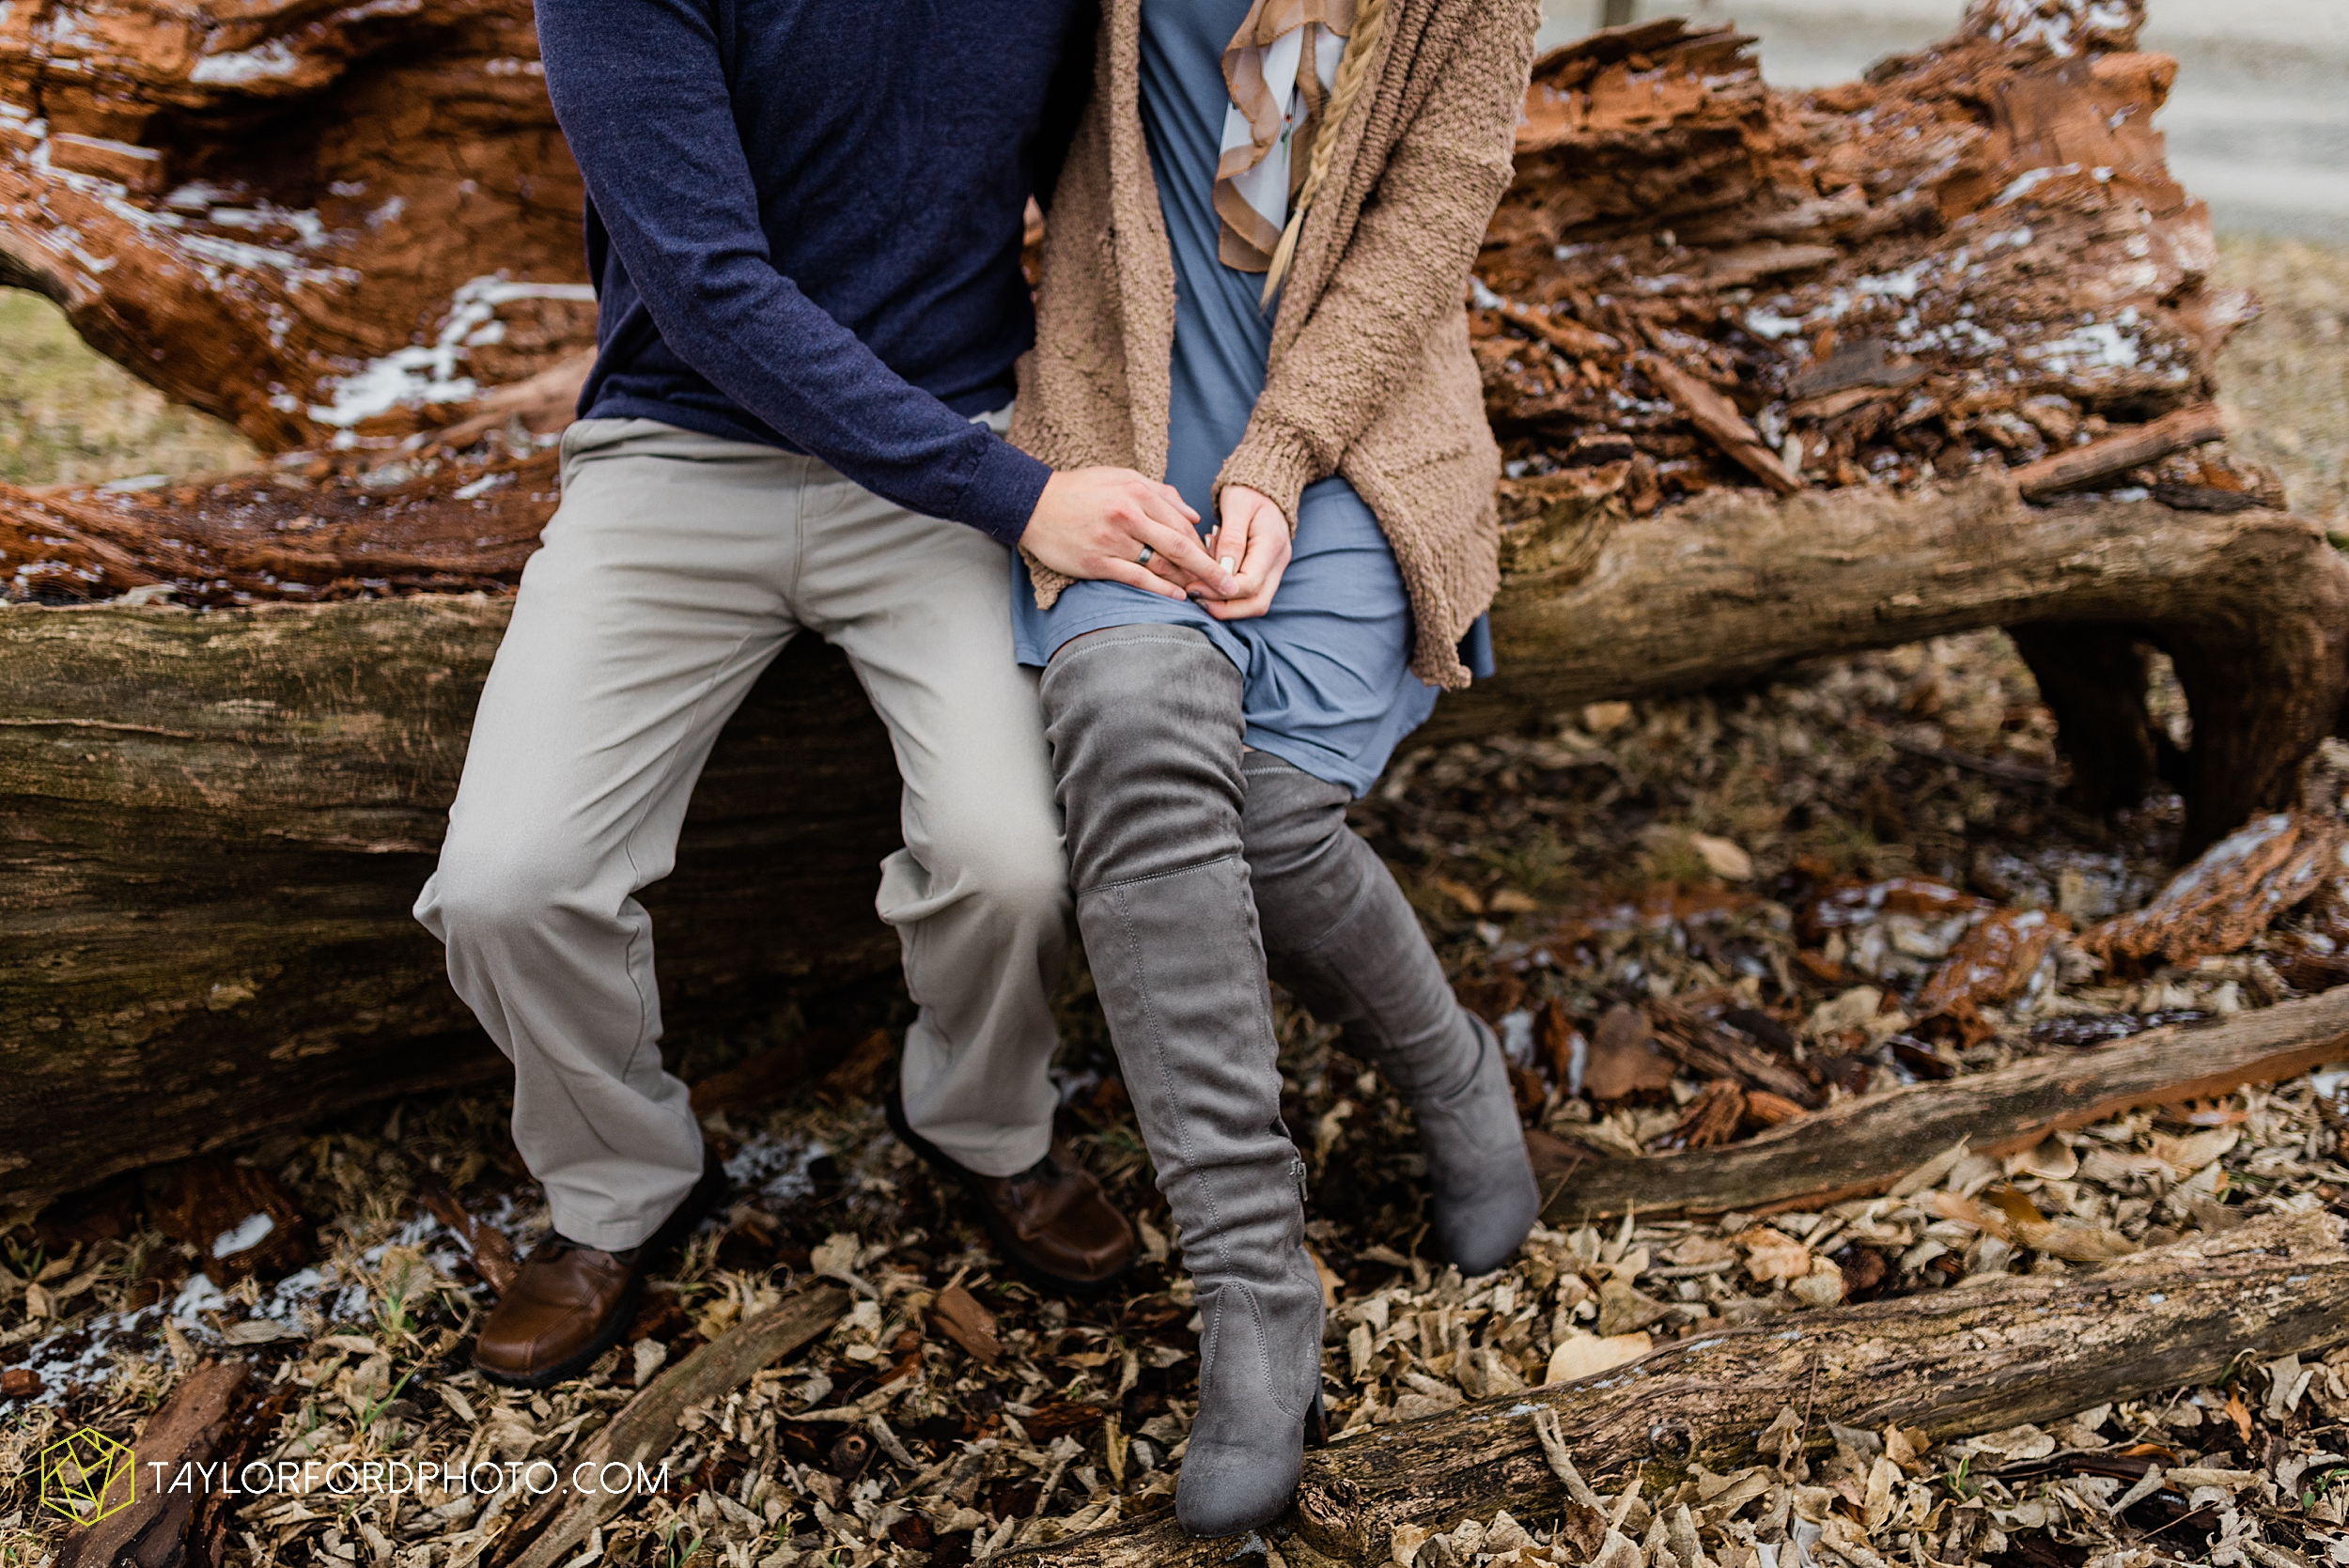 at-home-fidler-pond-park-downtown-goshen-indiana-engagement-photography-taylor-ford-hirschy-photographer_1990.jpg